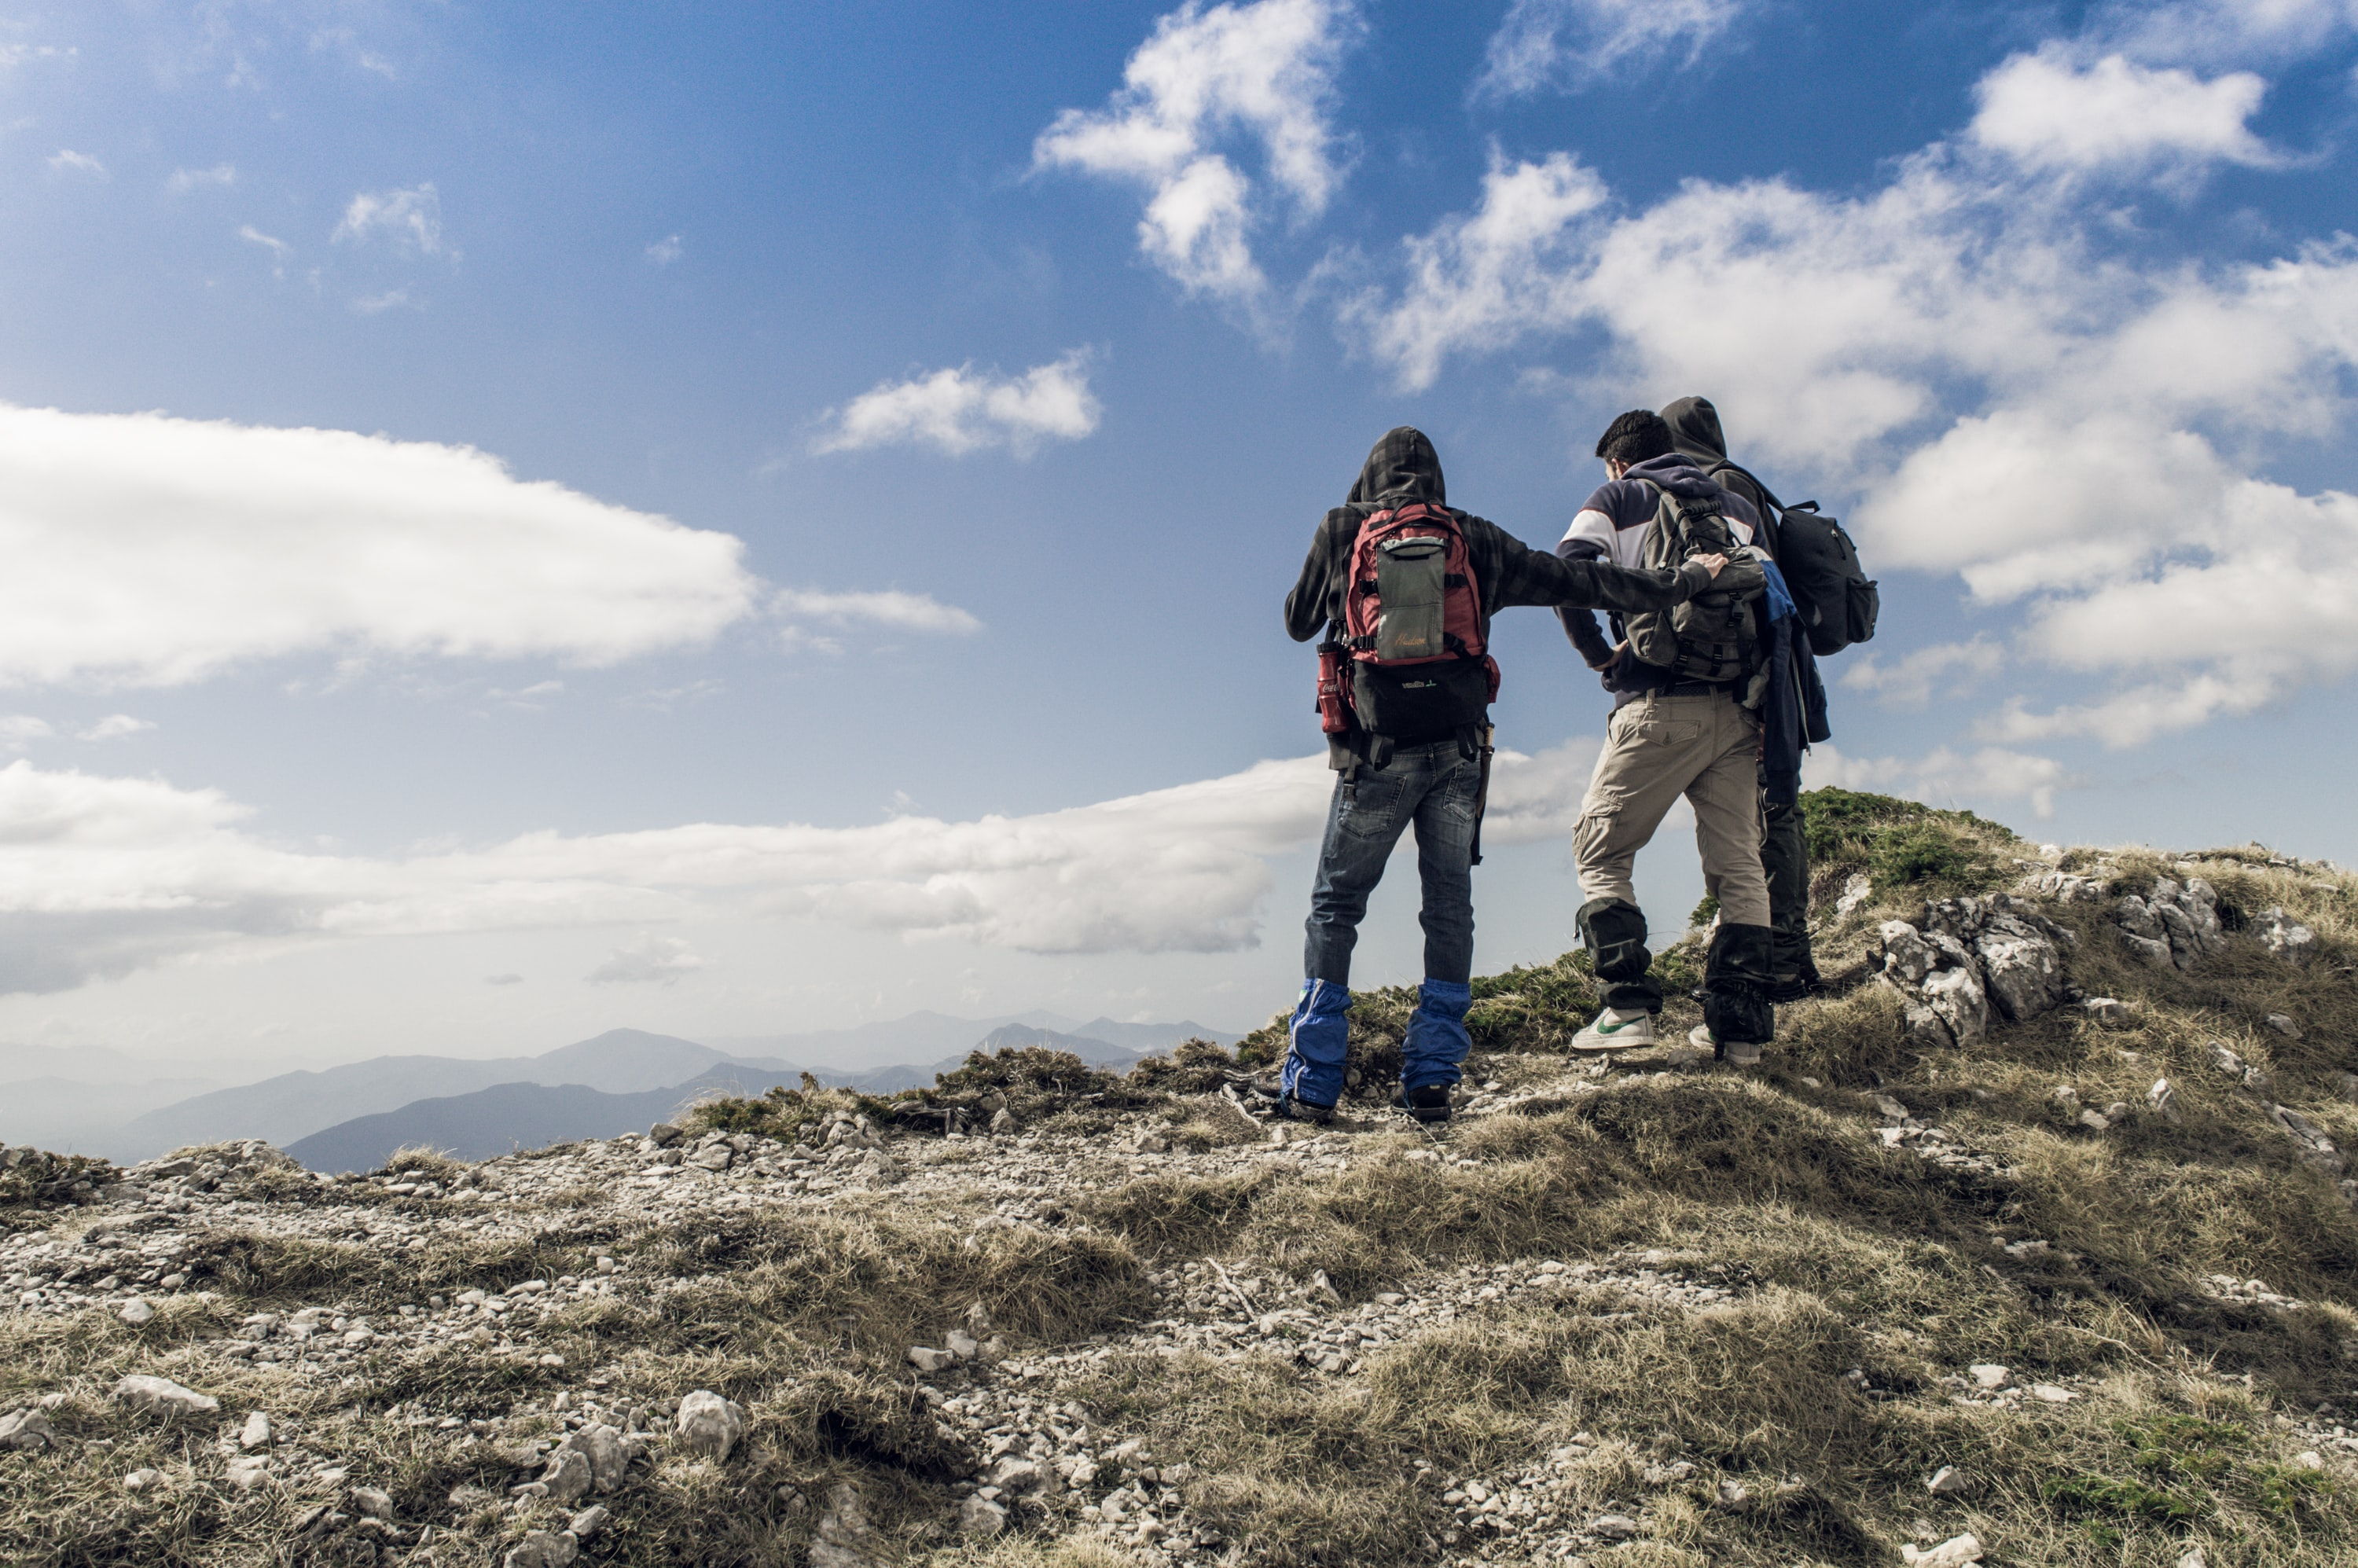 Hikers standing on a rocky mountain peak in Filignano looking at the sky and the hills